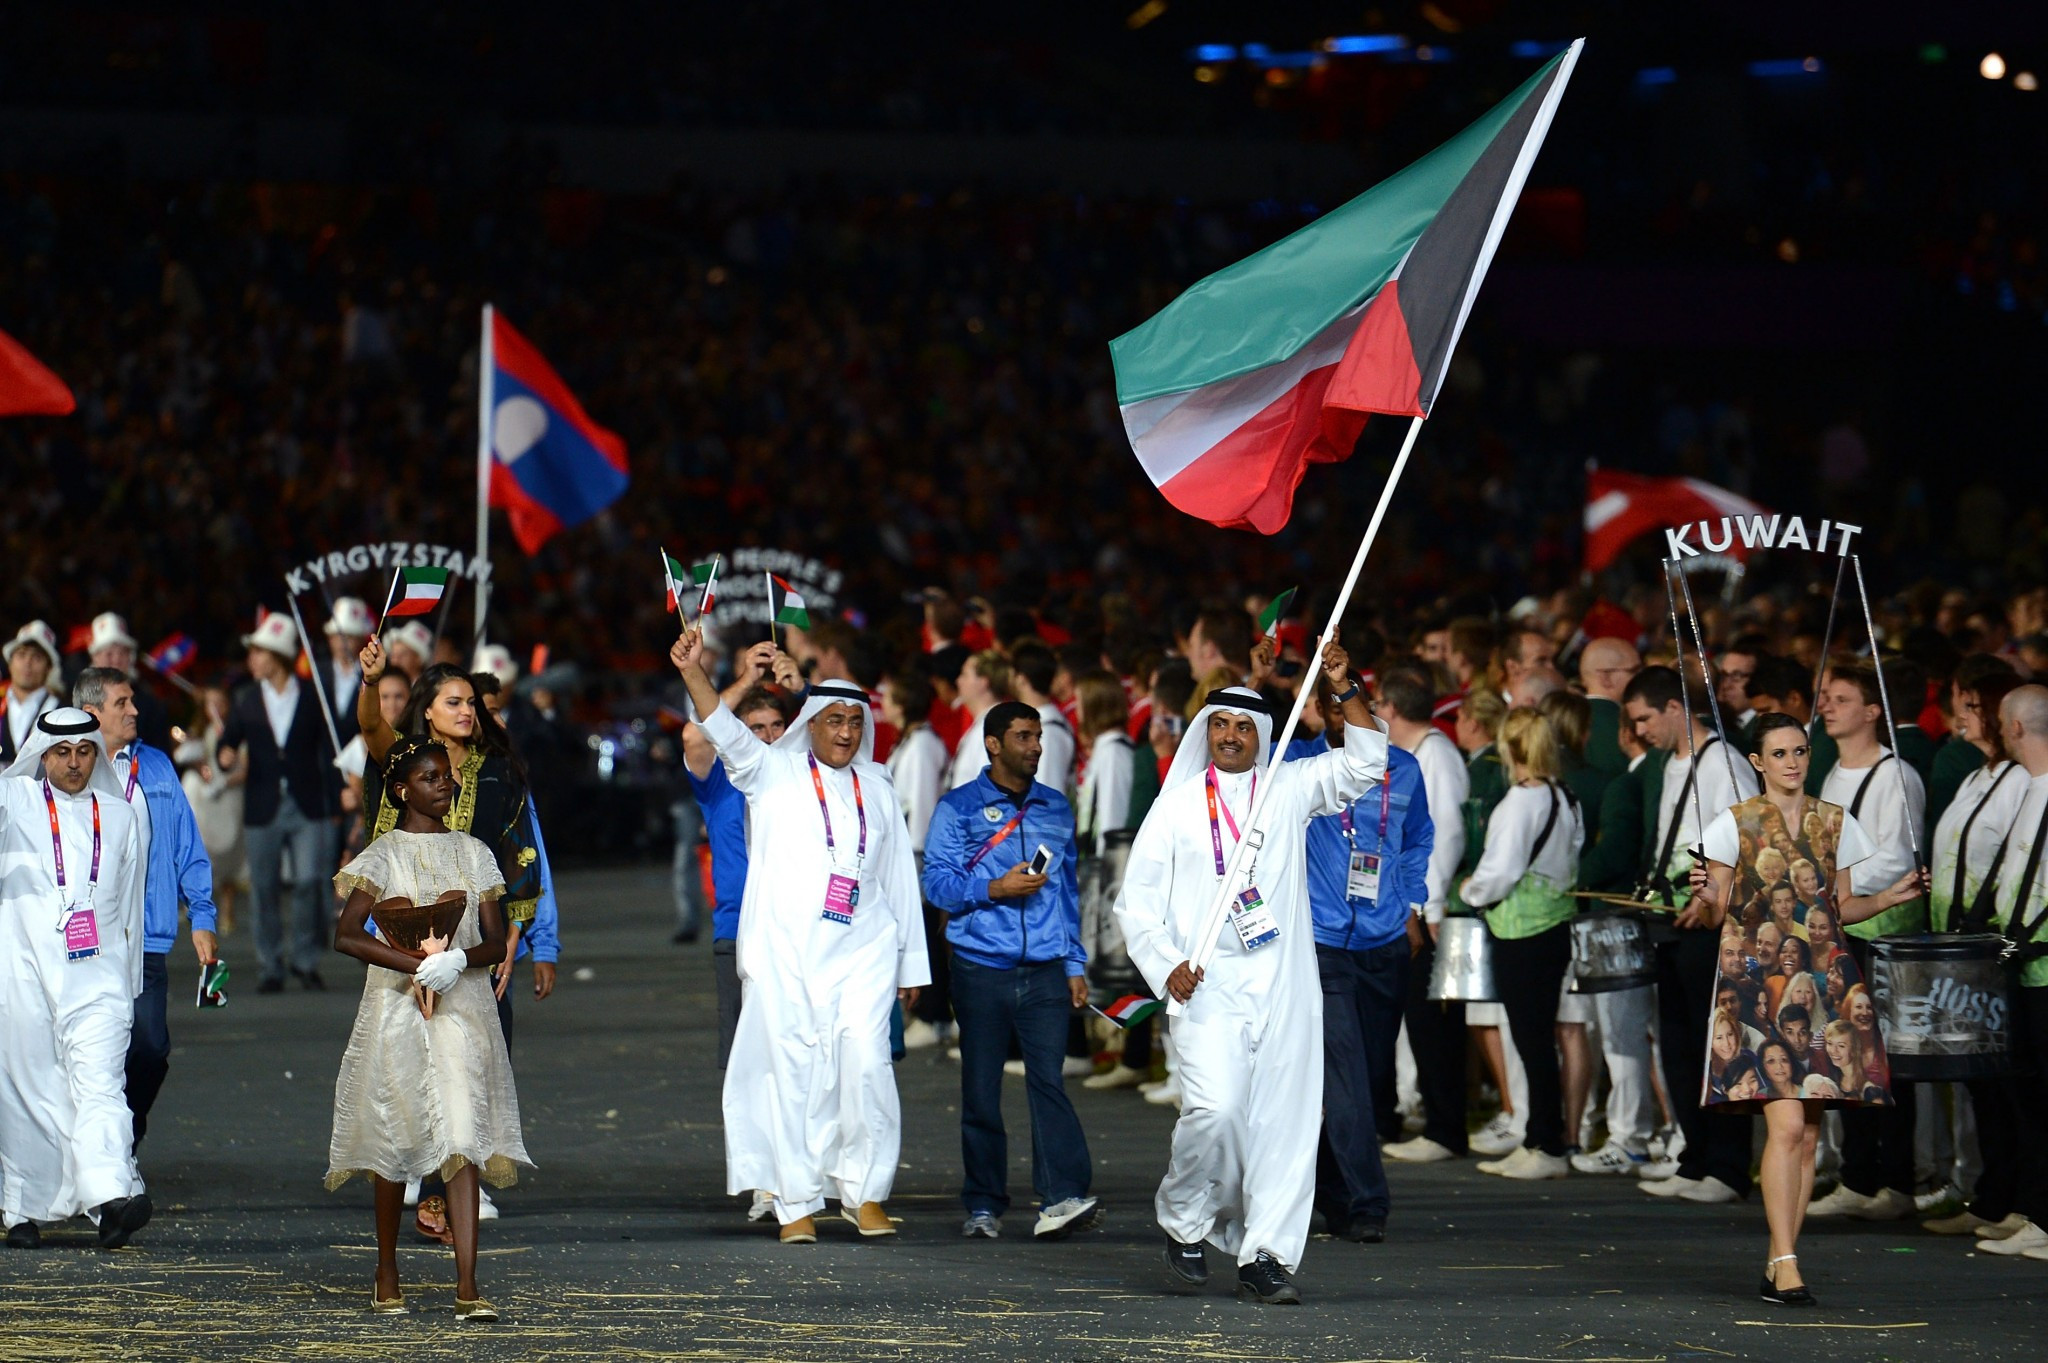 Kuwait, pictured marching at the Opening Ceremony of Rio 2016, are currently unable to compete under their own flag at the Olympics ©Getty Images